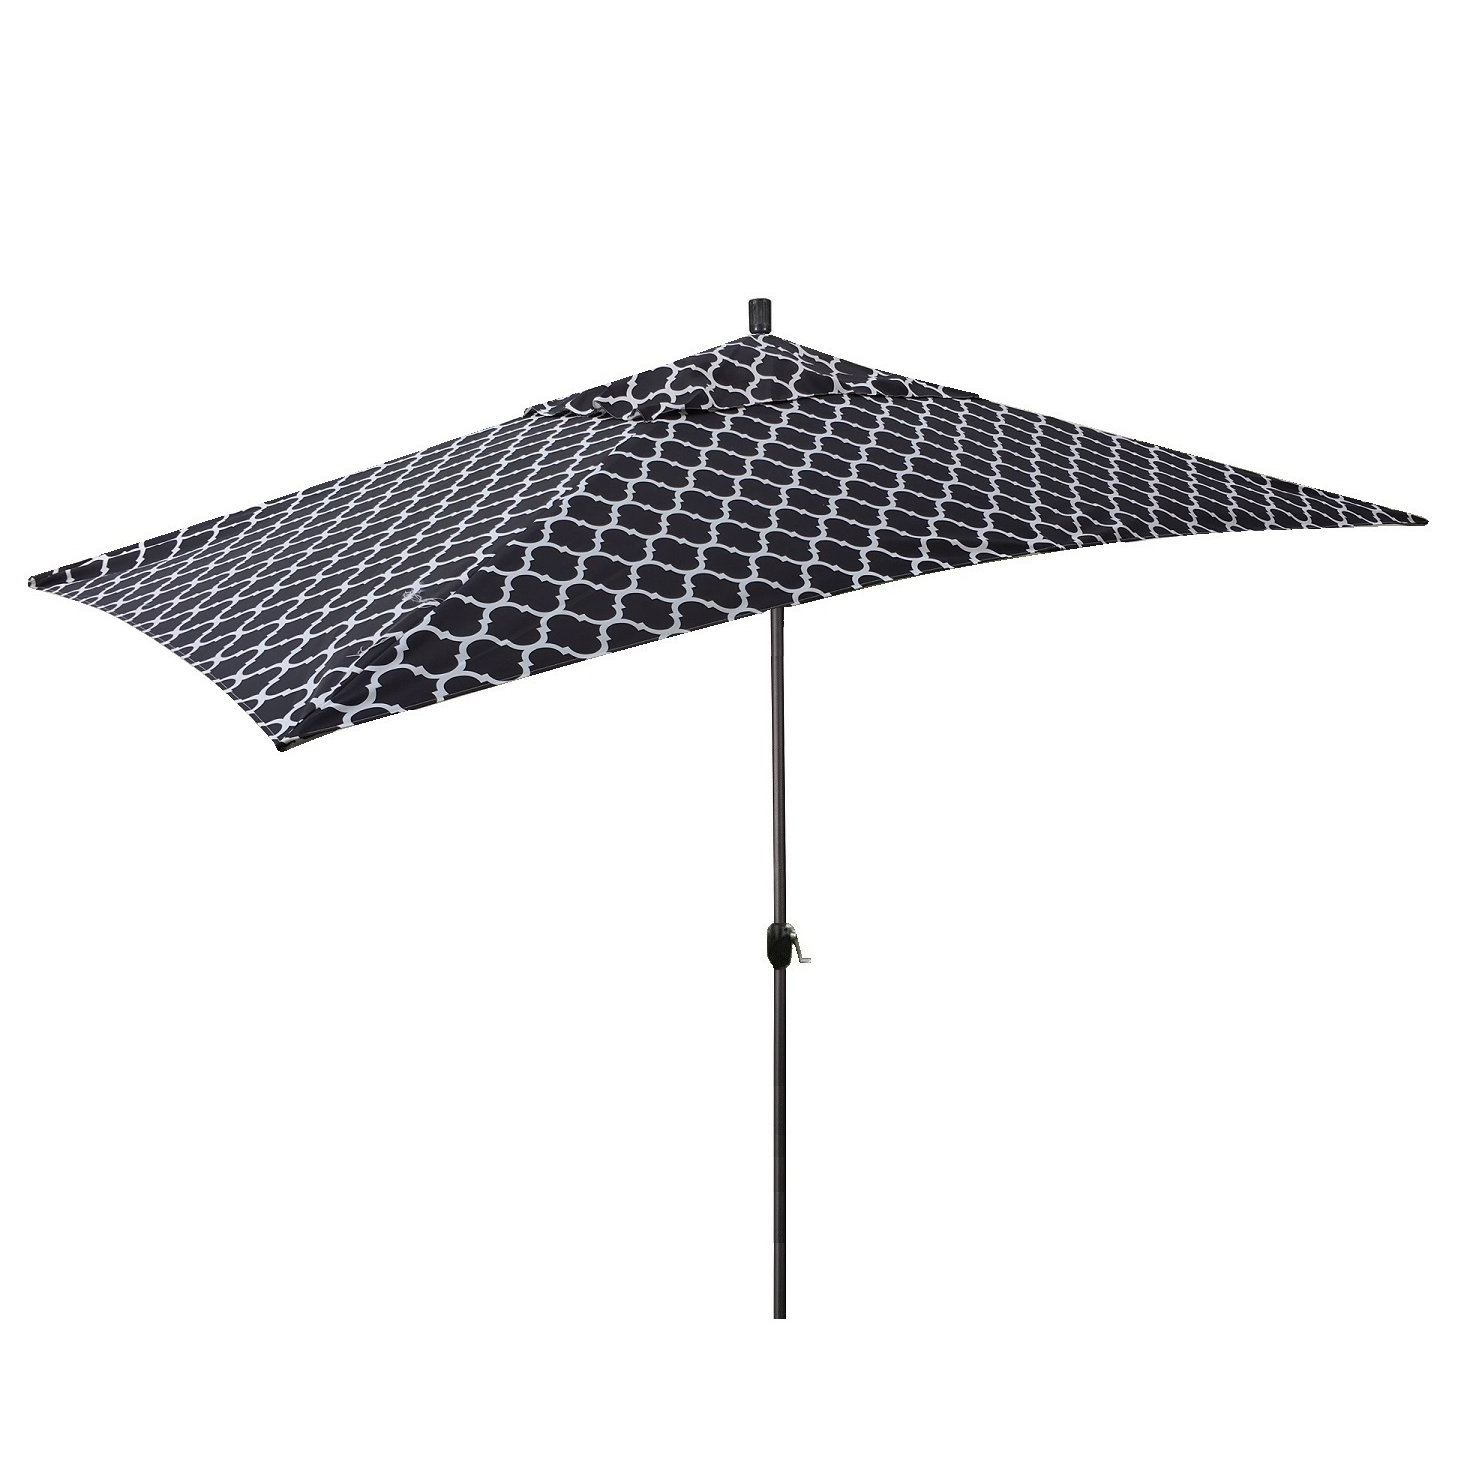 Sherlyn 10' X 6' Rectangular Market Umbrella With Regard To Famous Northfleet Rectangular Market Umbrellas (View 18 of 20)